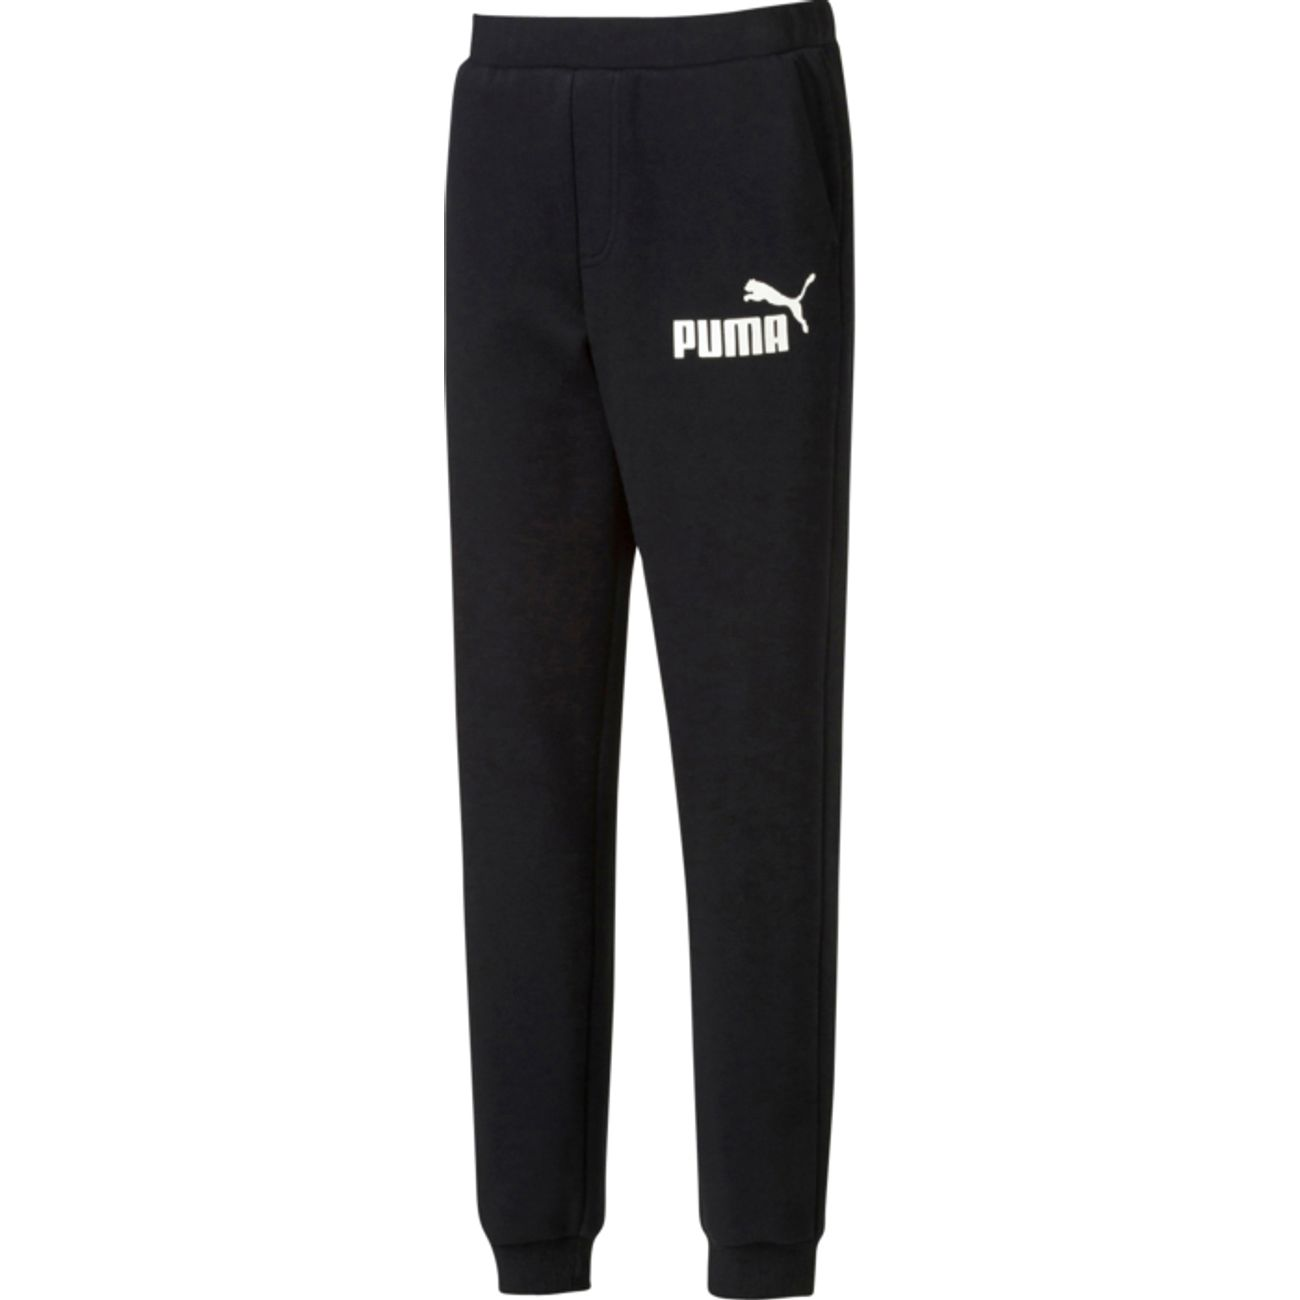 PANTALON GARCON Multisport garçon PUMA ESS LARGE LOGO SWEAT PANTS, CLOSED